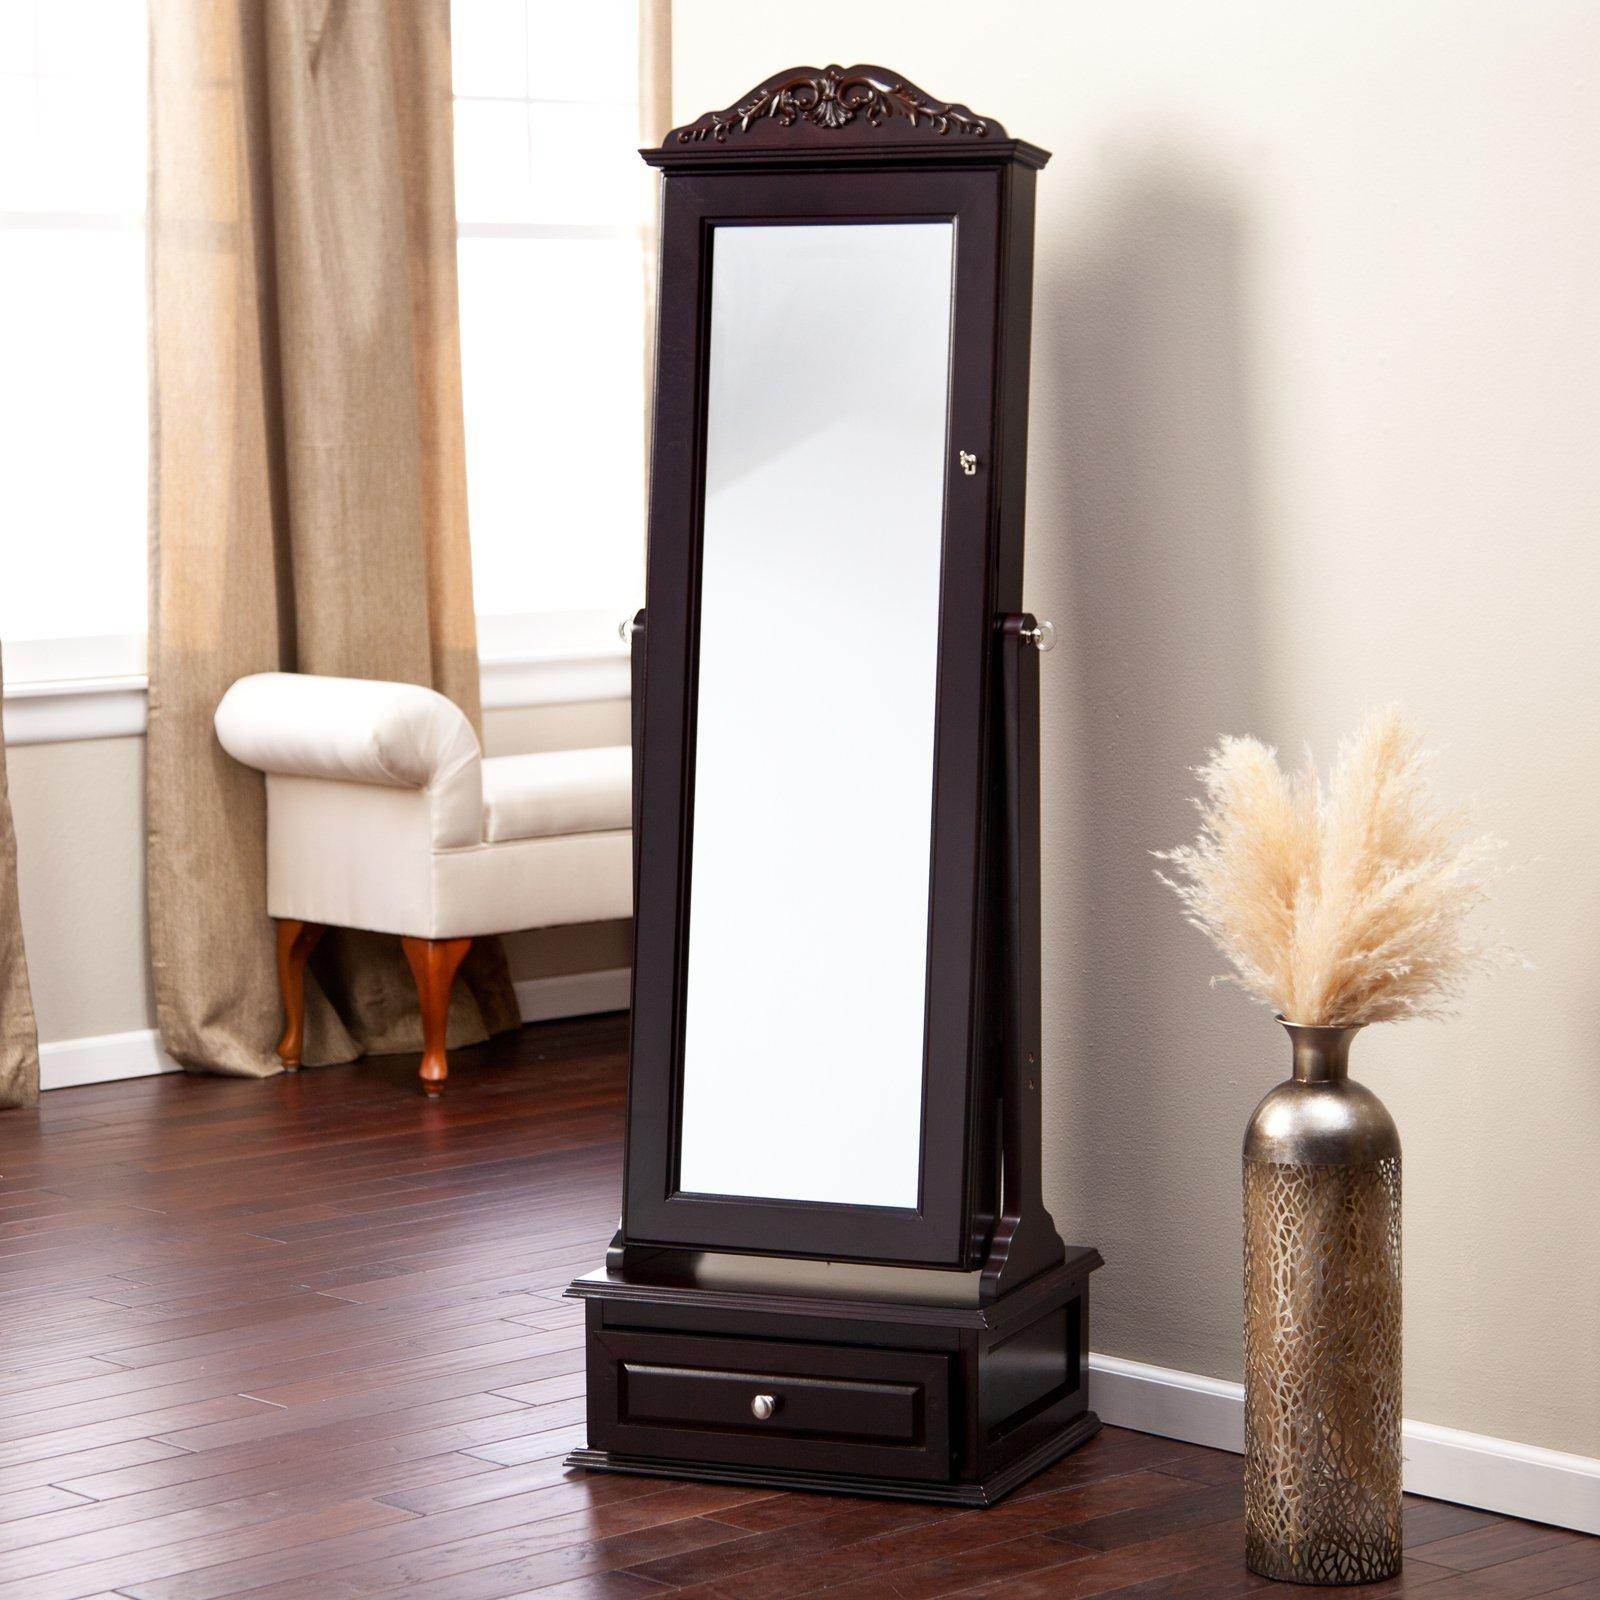 20 ideas of wall mounted mirrors for bedroom mirror ideas classy wall mounted mirrors bedroom with additional bedroom with wall mounted mirrors for bedroom image amipublicfo Choice Image